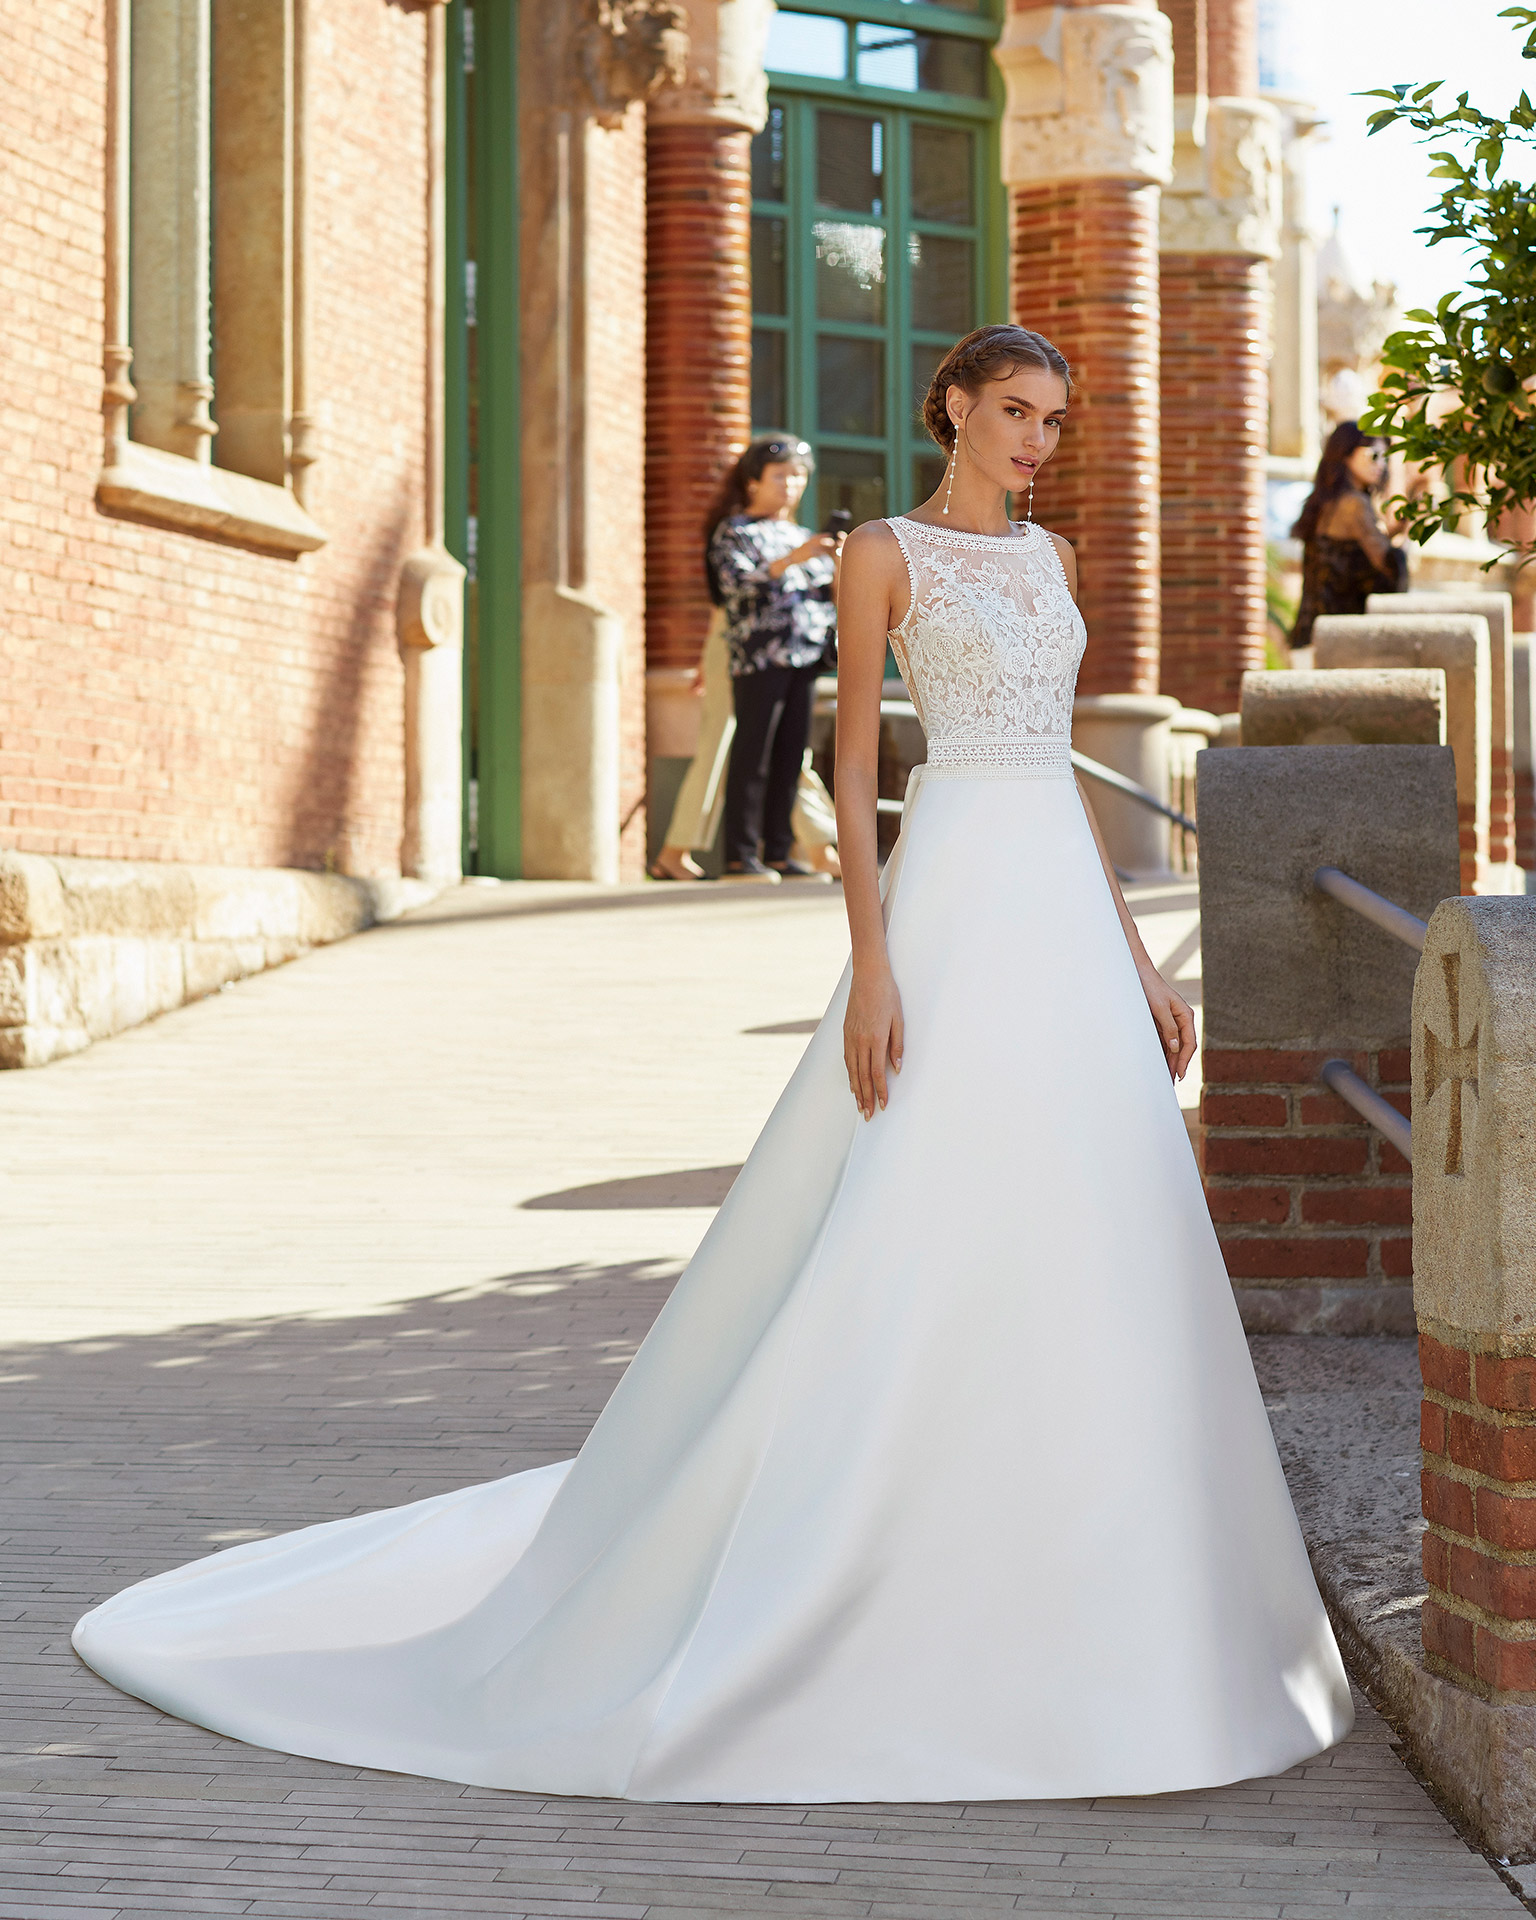 Classic-style wedding dress in satin with beaded lace on waist and neckline. Round neckline and low back with bow. 2021  Collection.